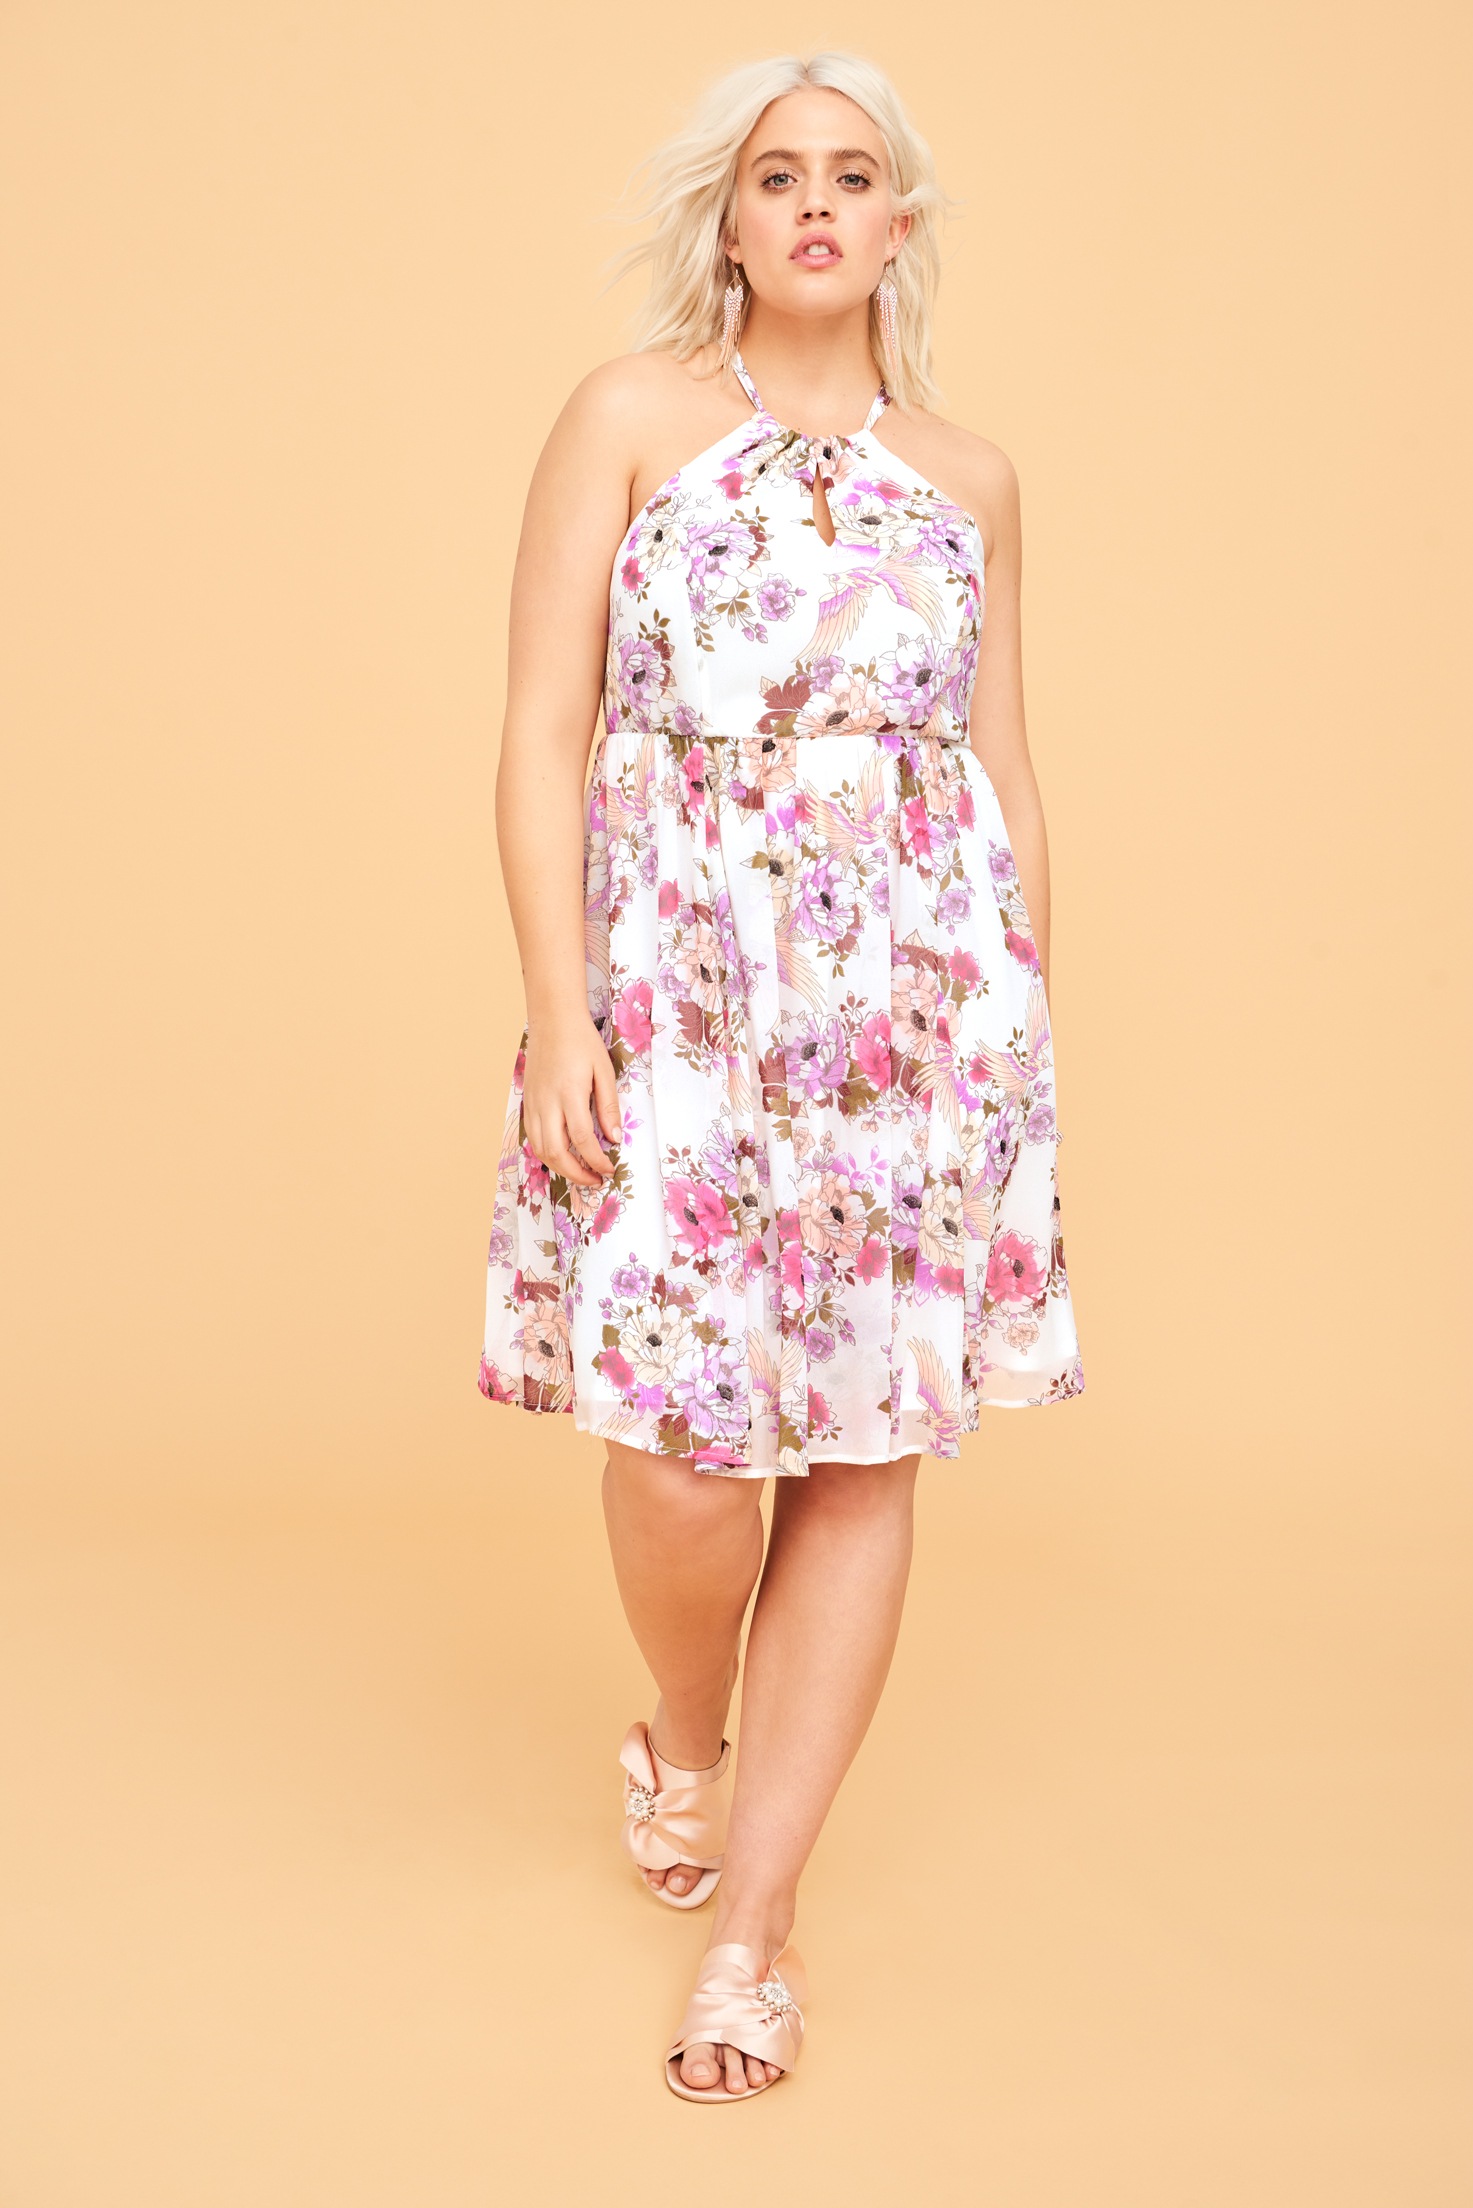 SHOT_42_0055_SUMMER-02_TORRID_V1.jpg